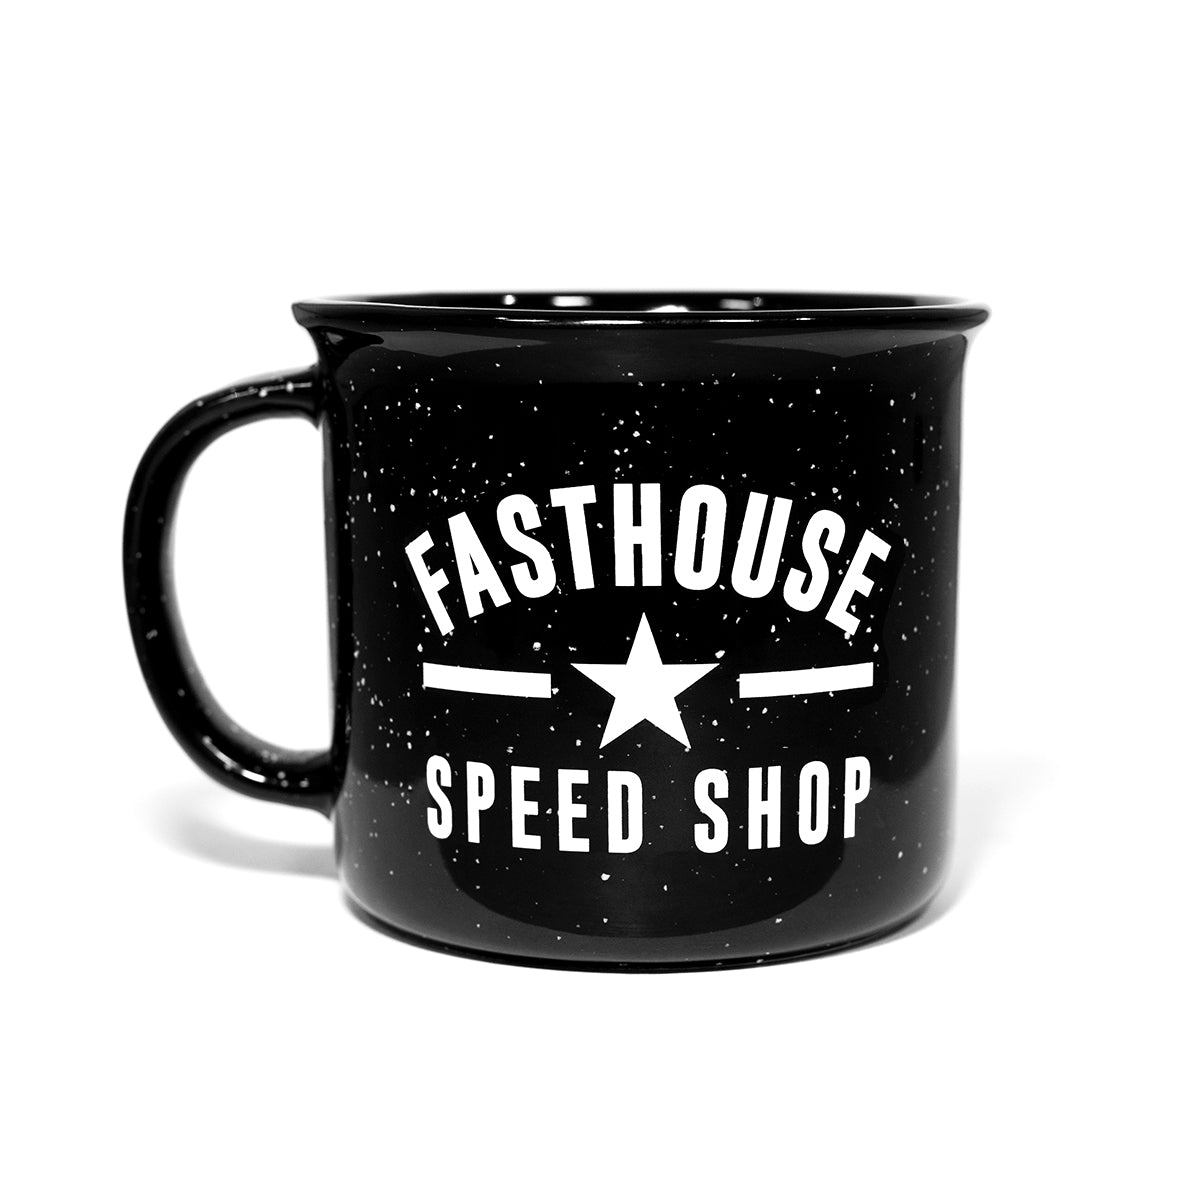 Ceramic Fasthouse Mug - Black